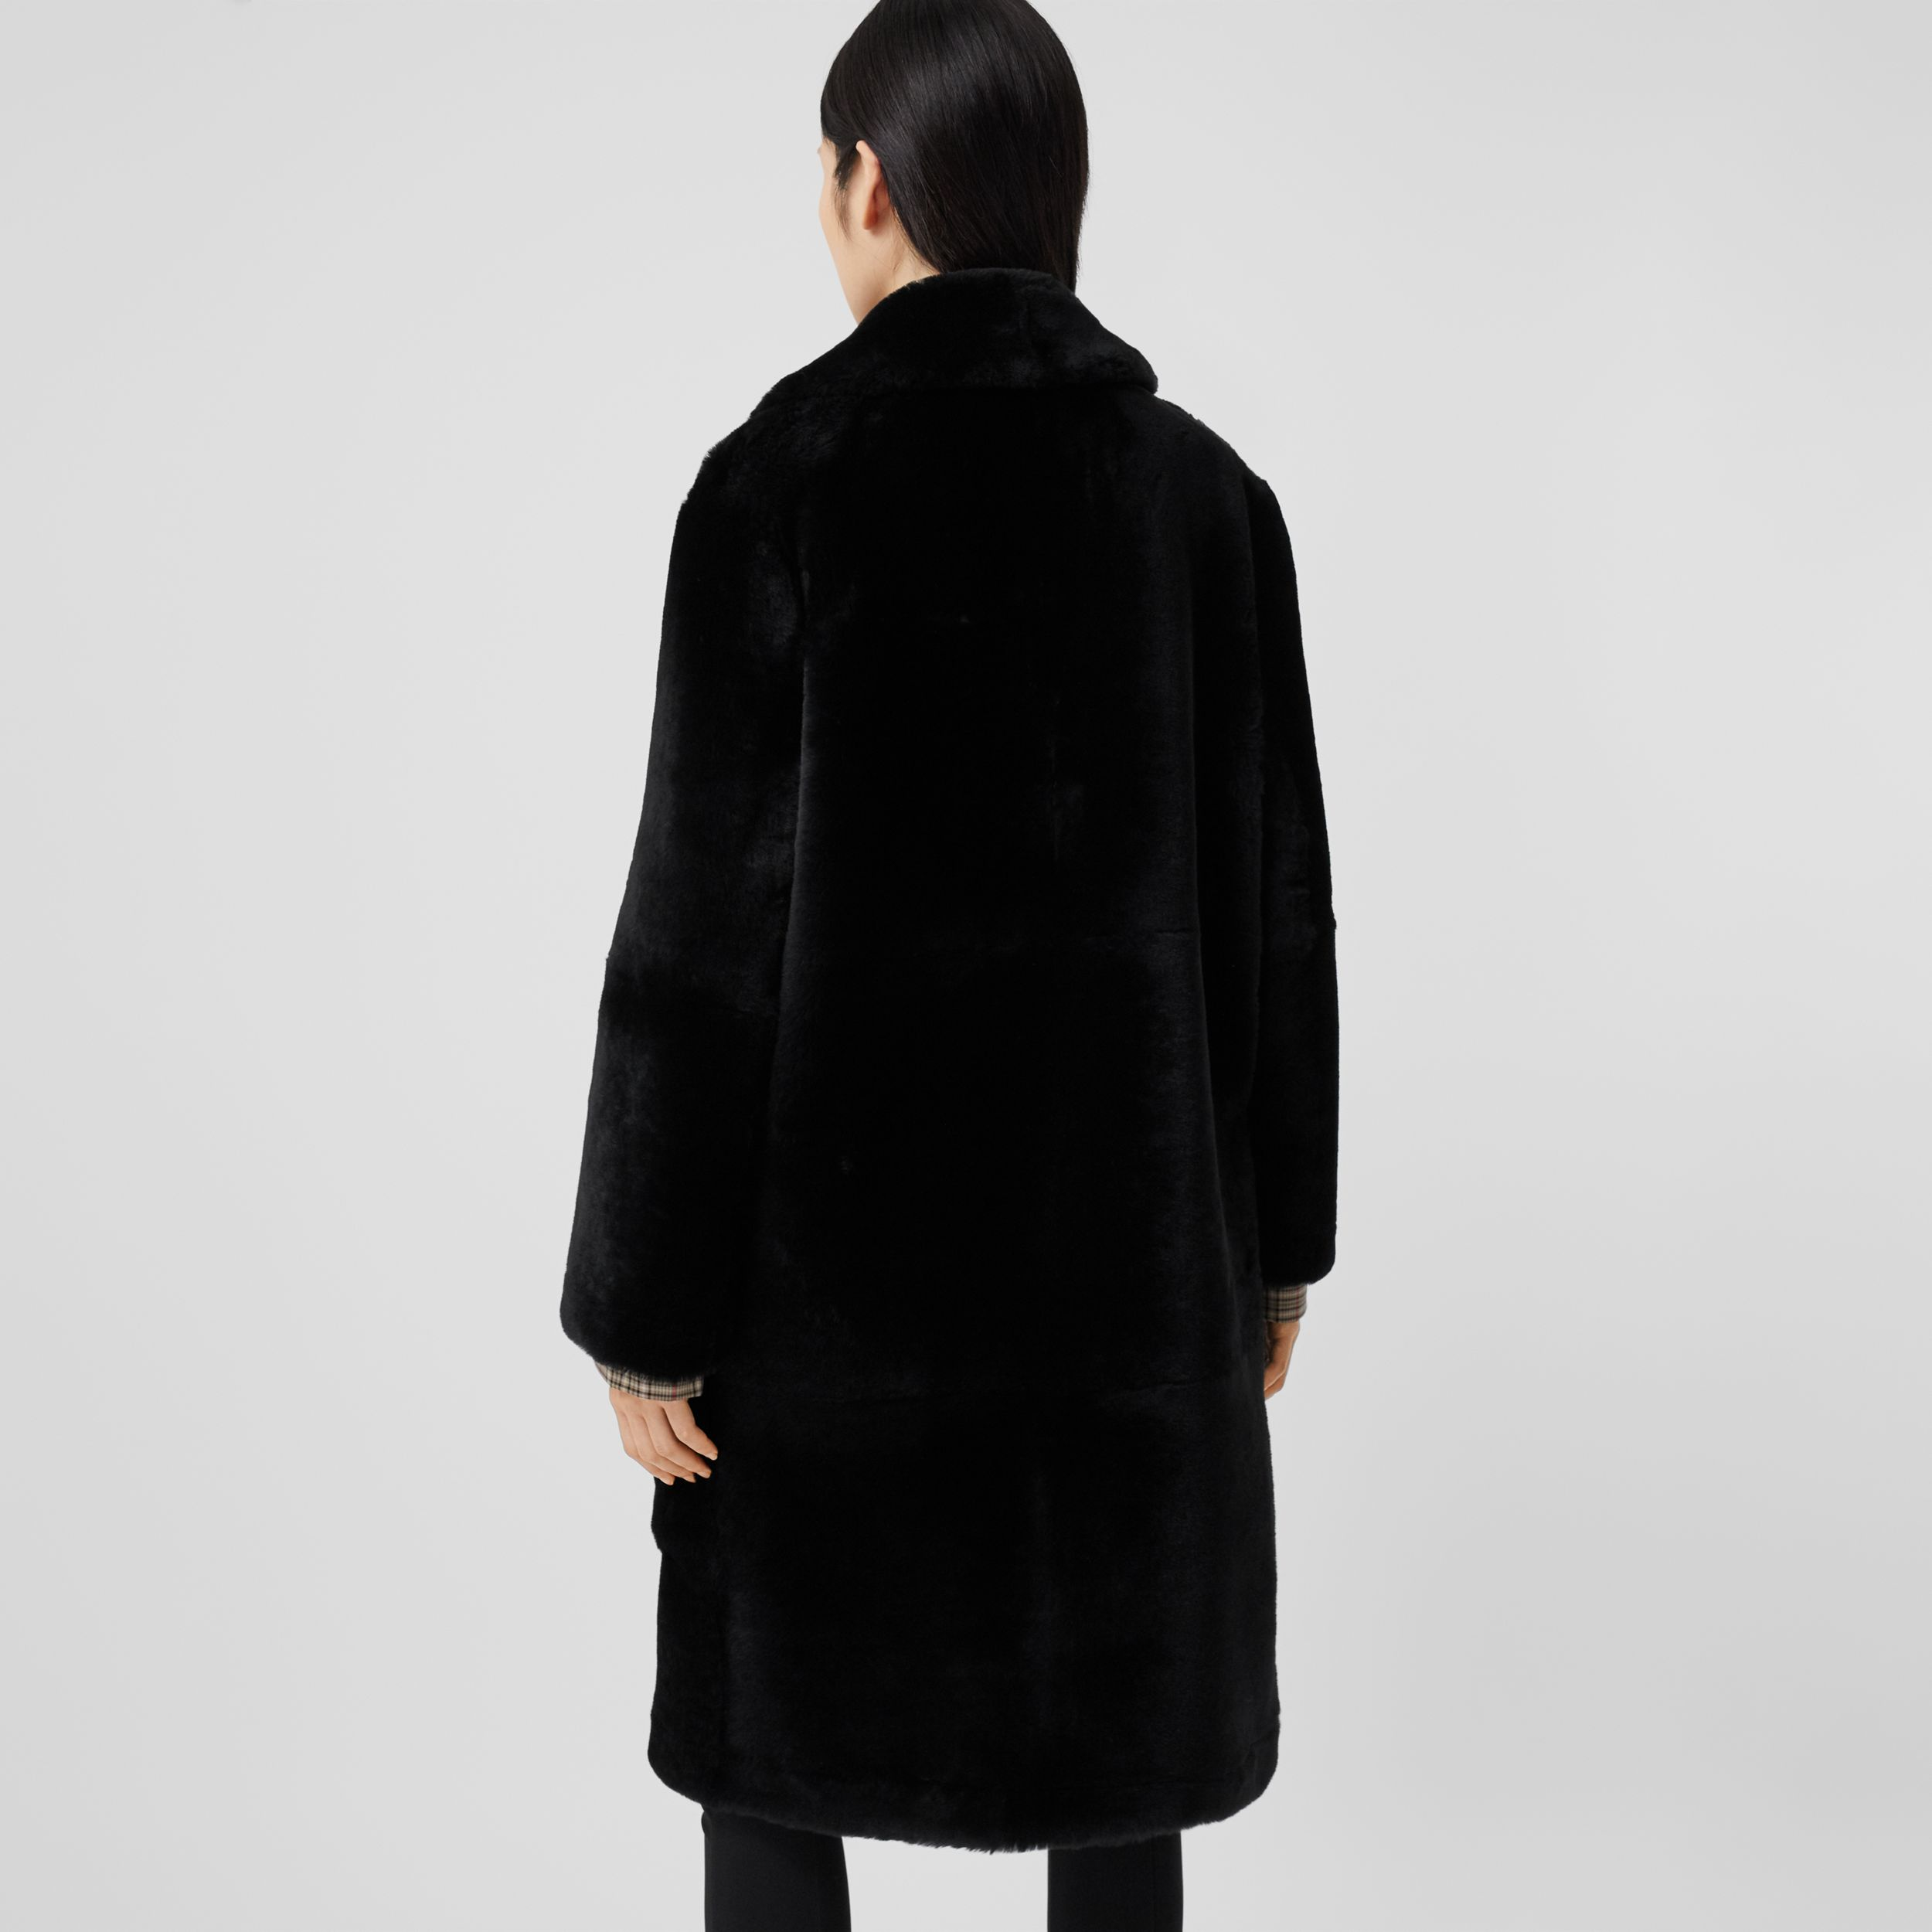 Lambskin Trim Shearling Tailored Coat in Black - Women | Burberry - 3